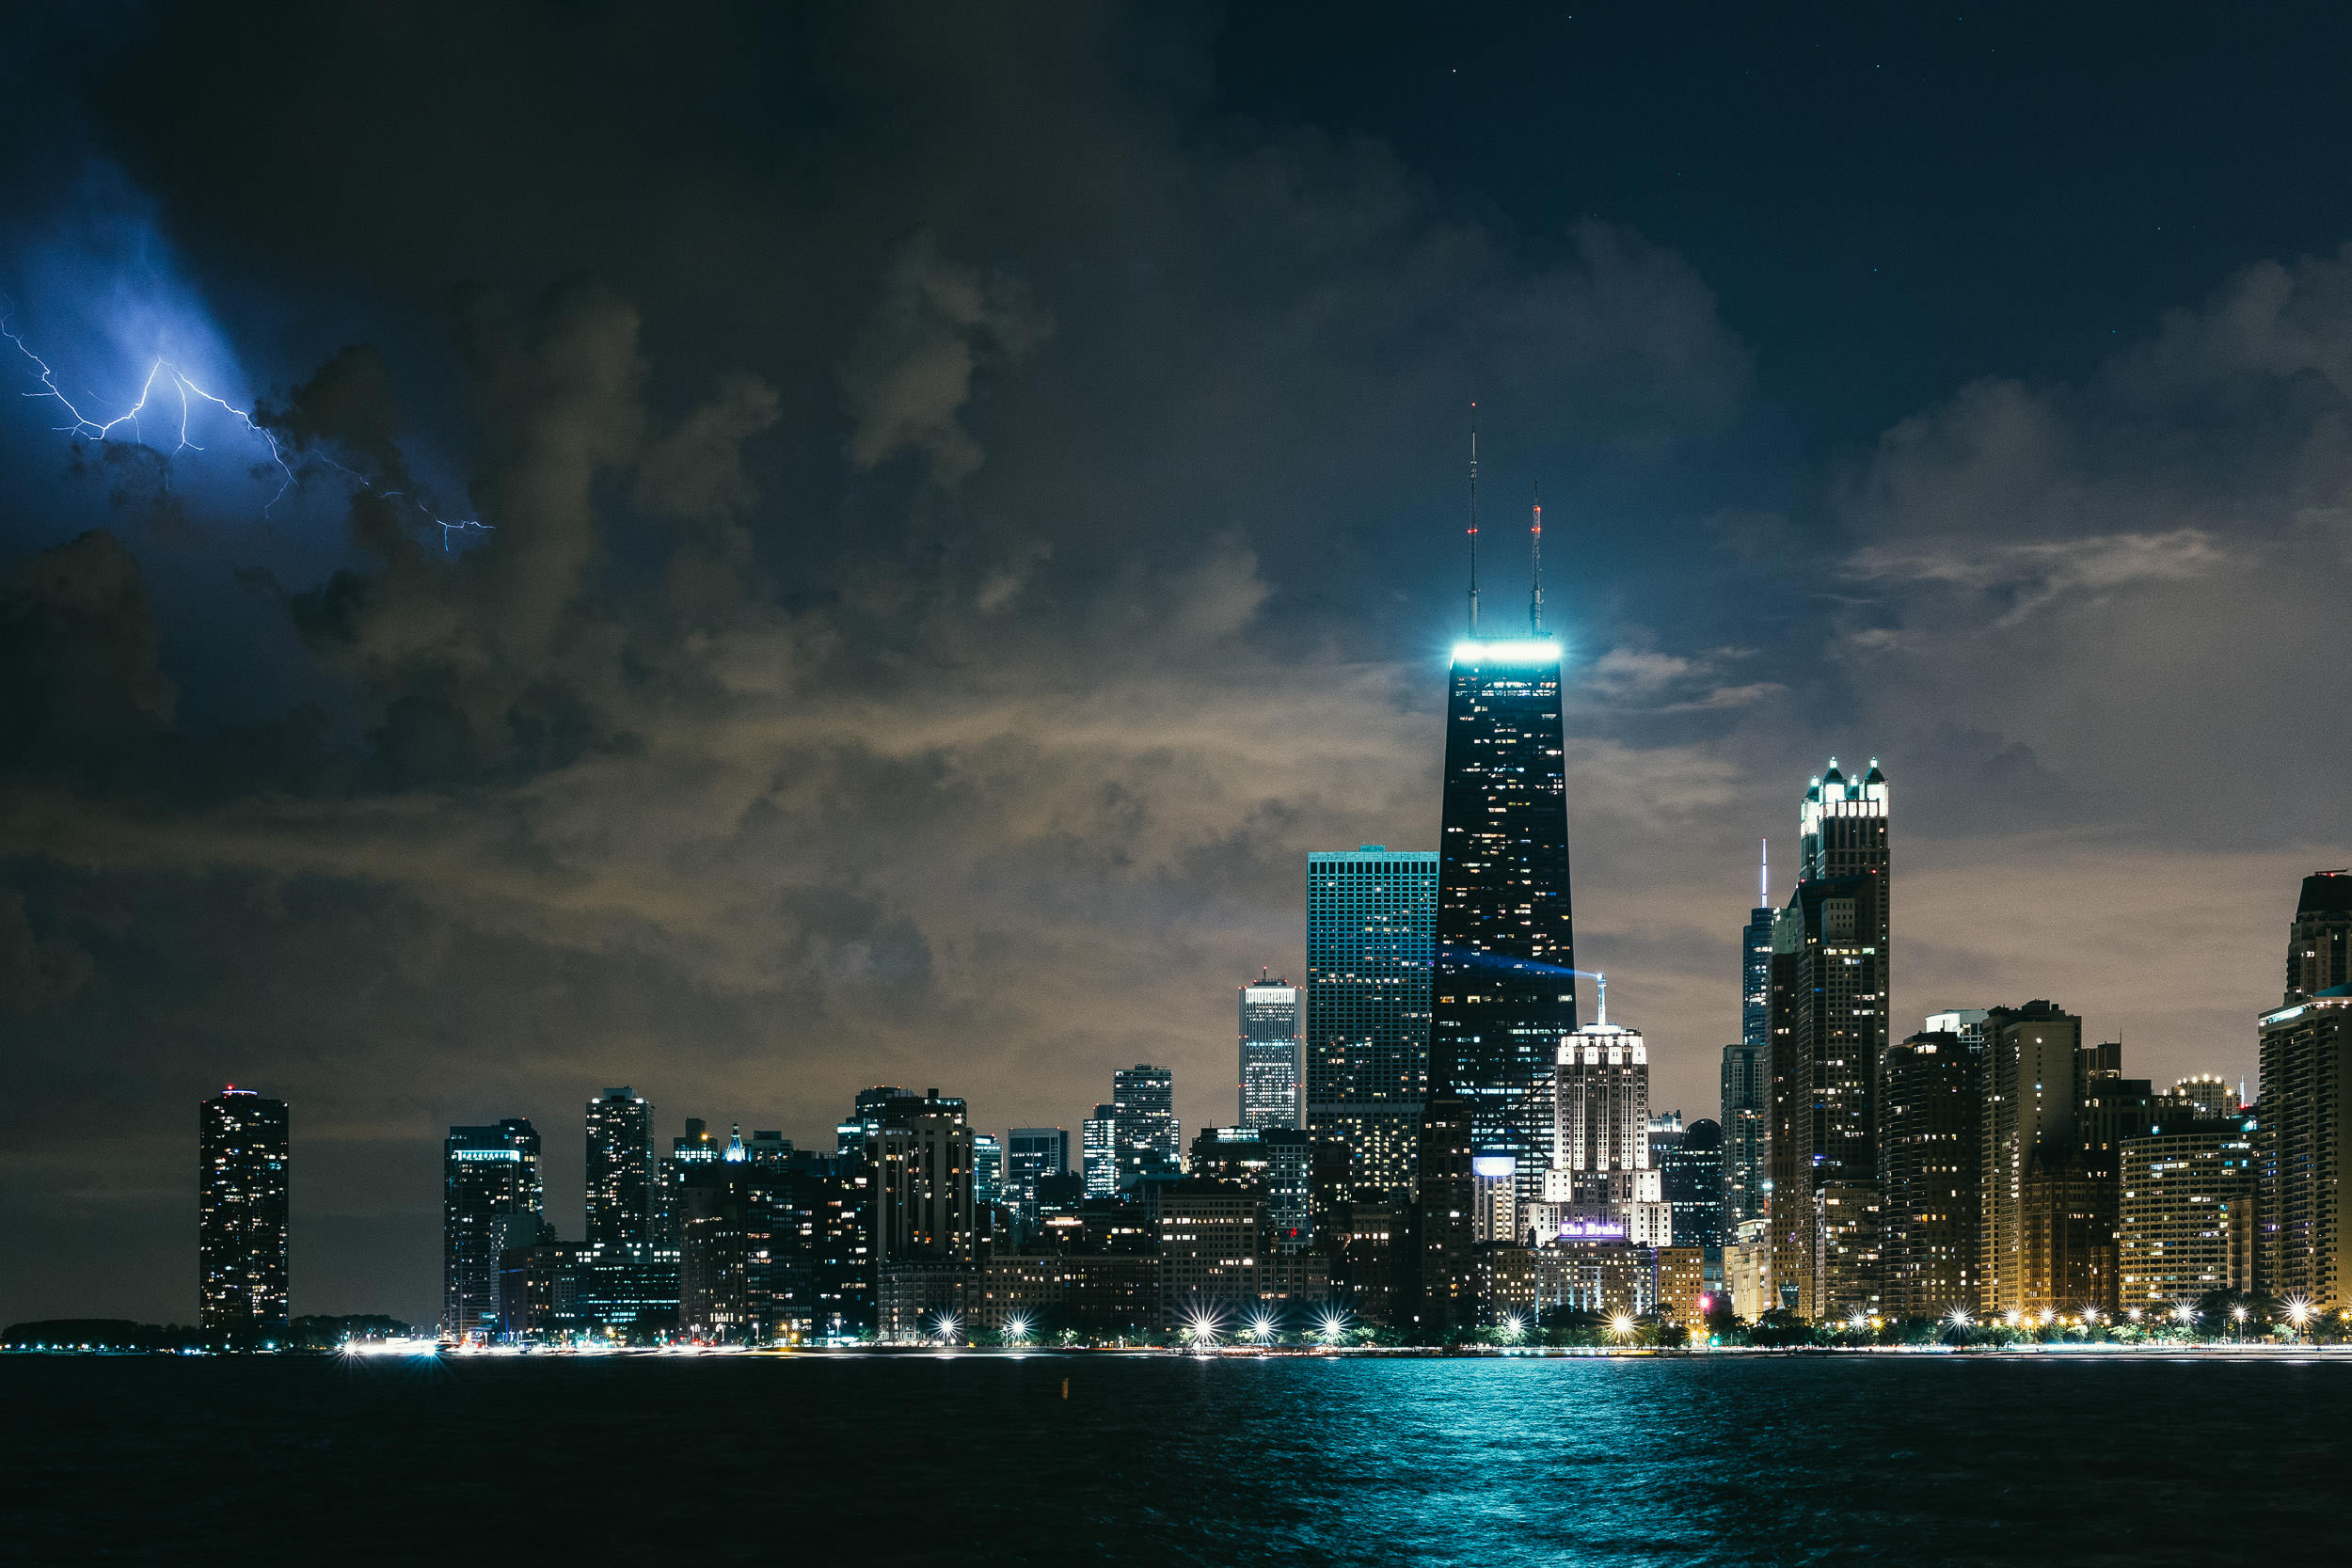 2015.07.17_Lakefront_18th_St_Planetarium_Navy_Pier_Ride-0207.jpg